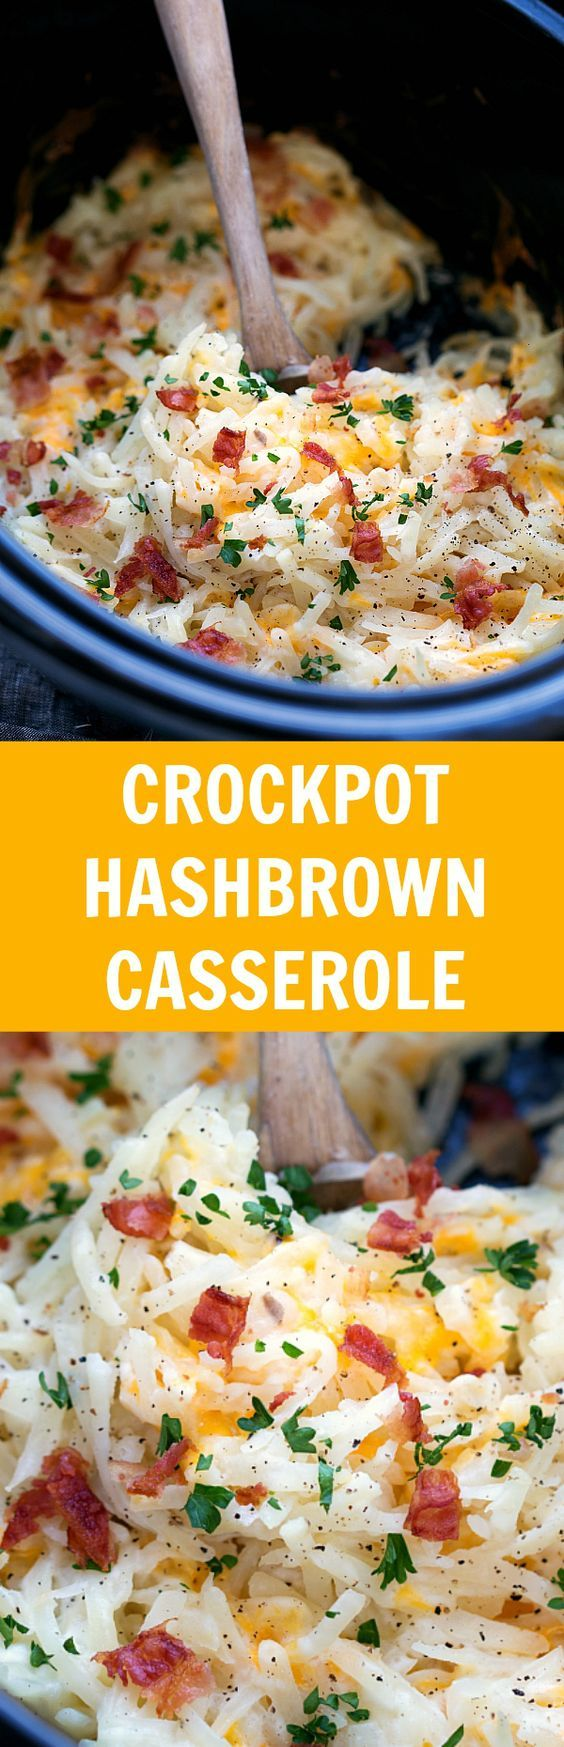 Simple Slow Cooker Hashbrown Casserole. Easy and healthier -- NO cream of soups!: